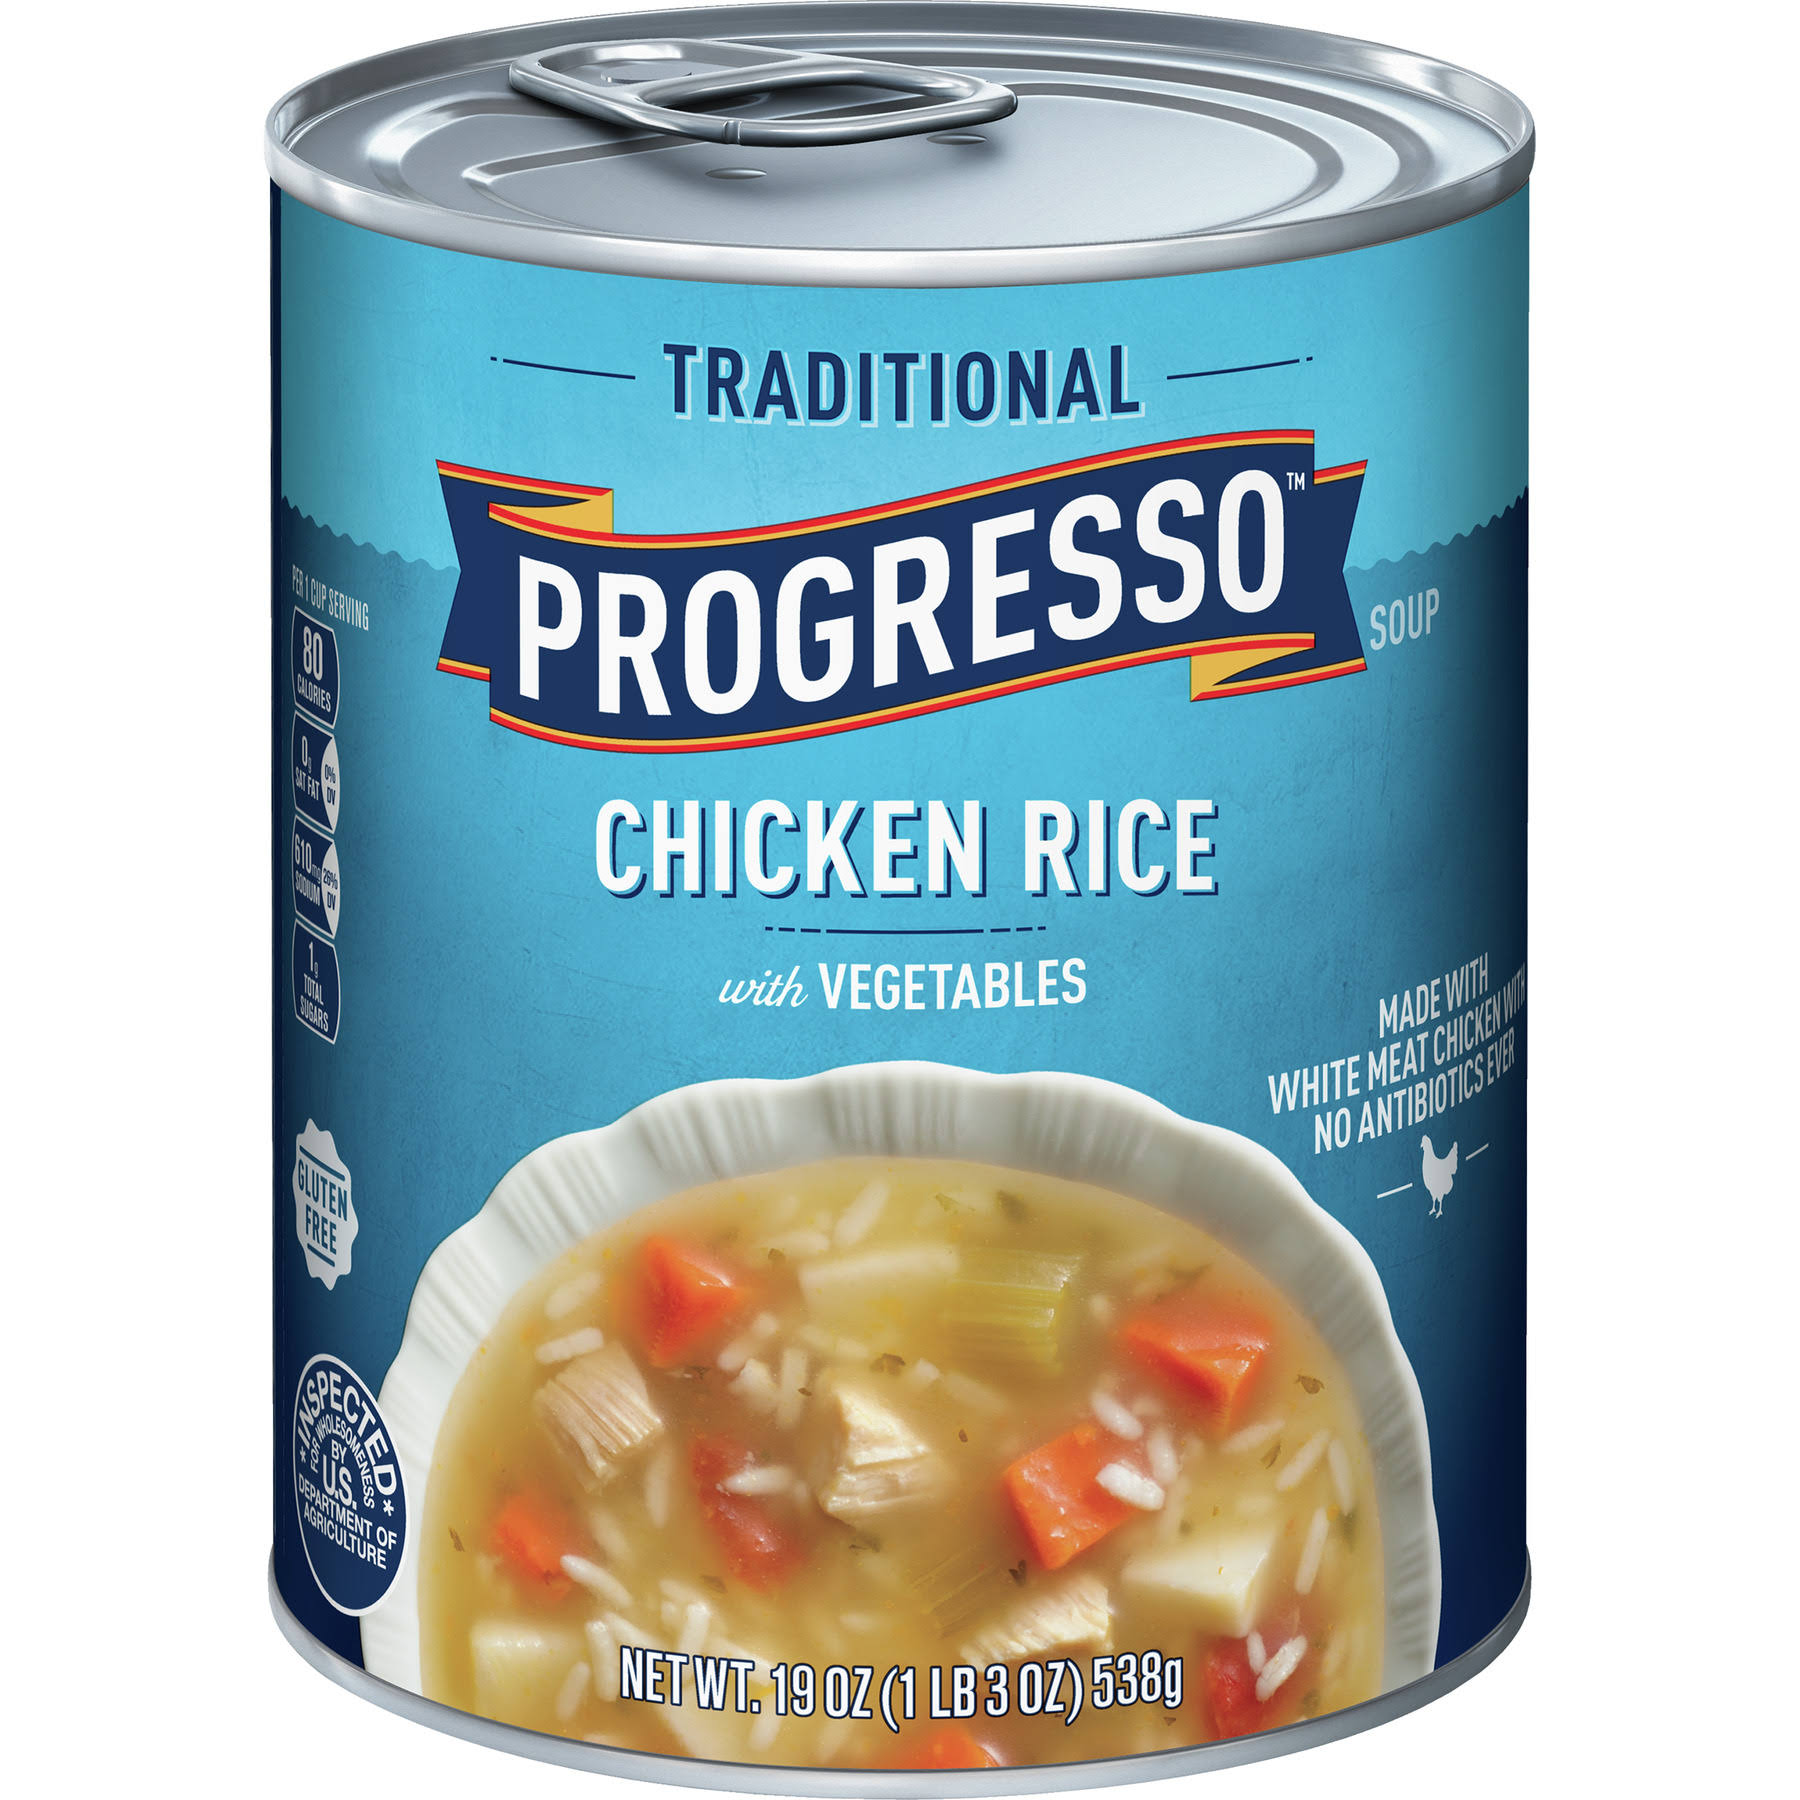 Progresso Traditional Soup - Chicken Rice/Vegetables, 19oz